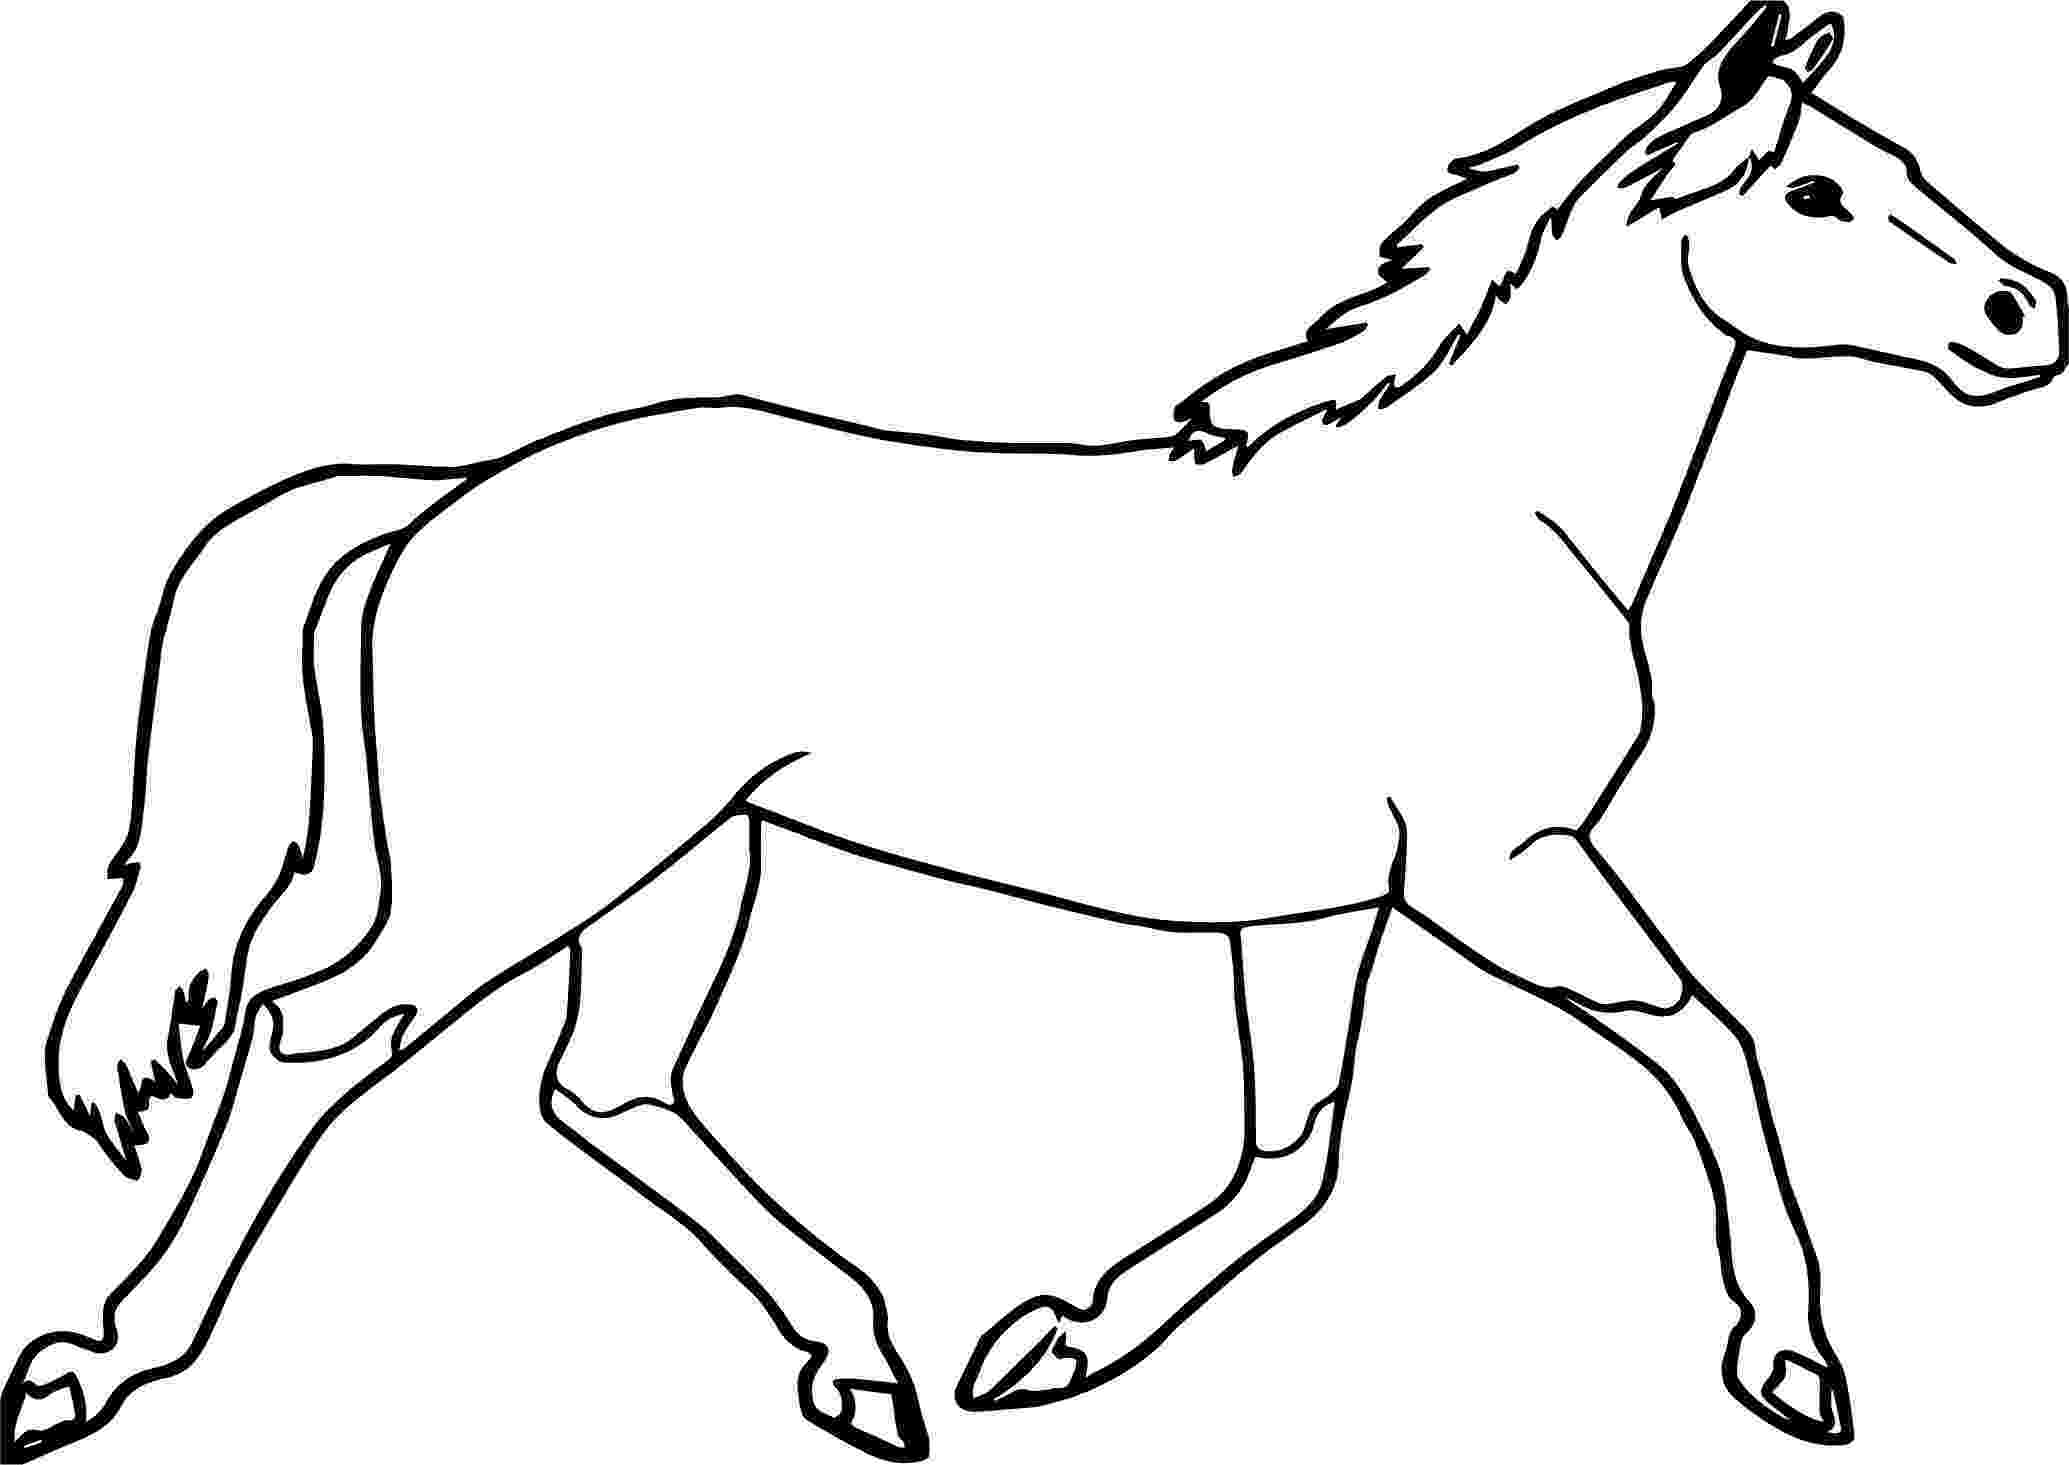 horse coloring images horse coloring pages for adults best coloring pages for kids images coloring horse